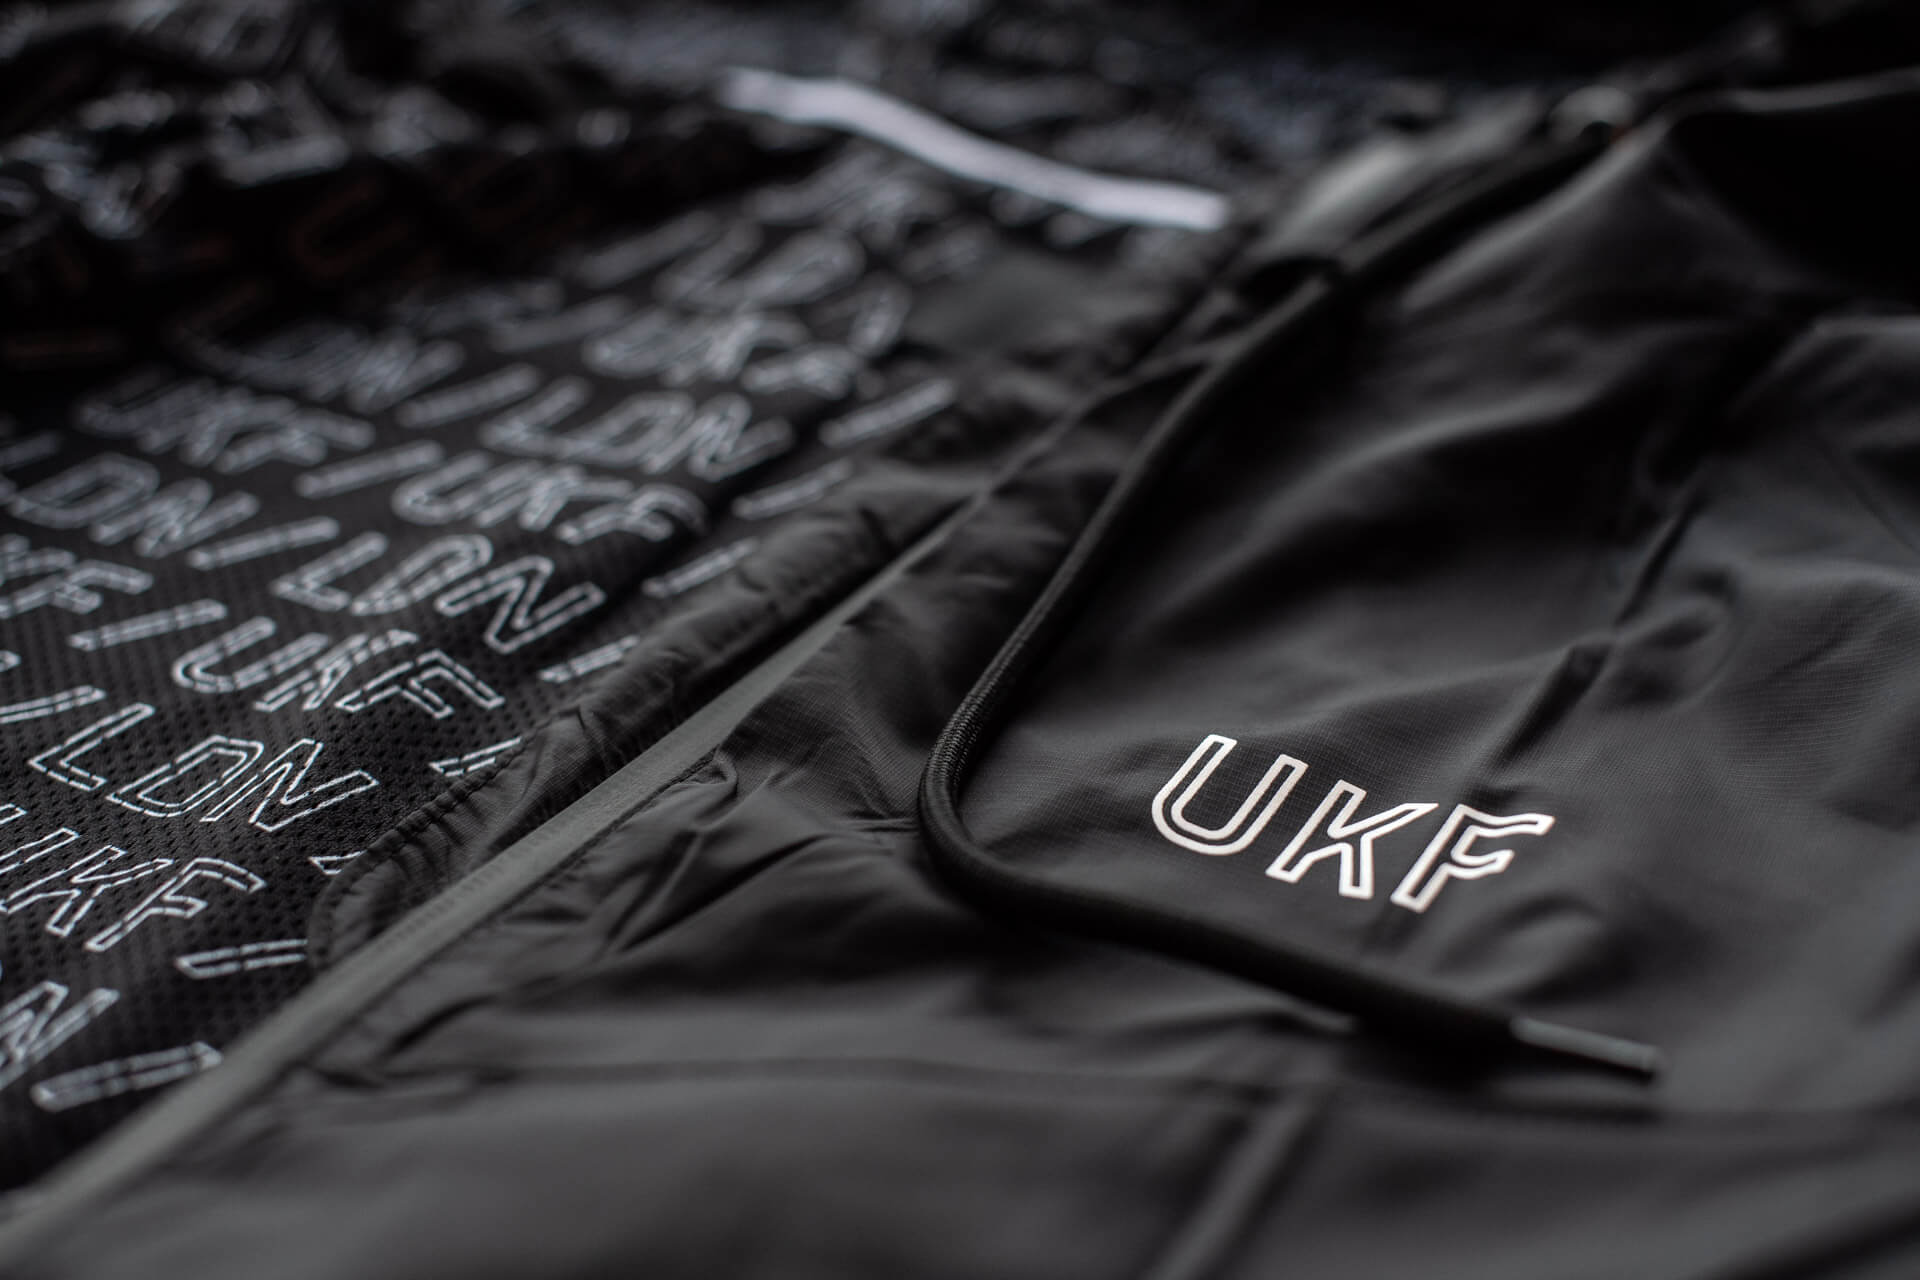 UKF Windbreaker - Made from ultra-lightweight and weather resistant fabric. Its breathable design allows for better heat ventilation. Perfect for Festivals, workouts or general wear.